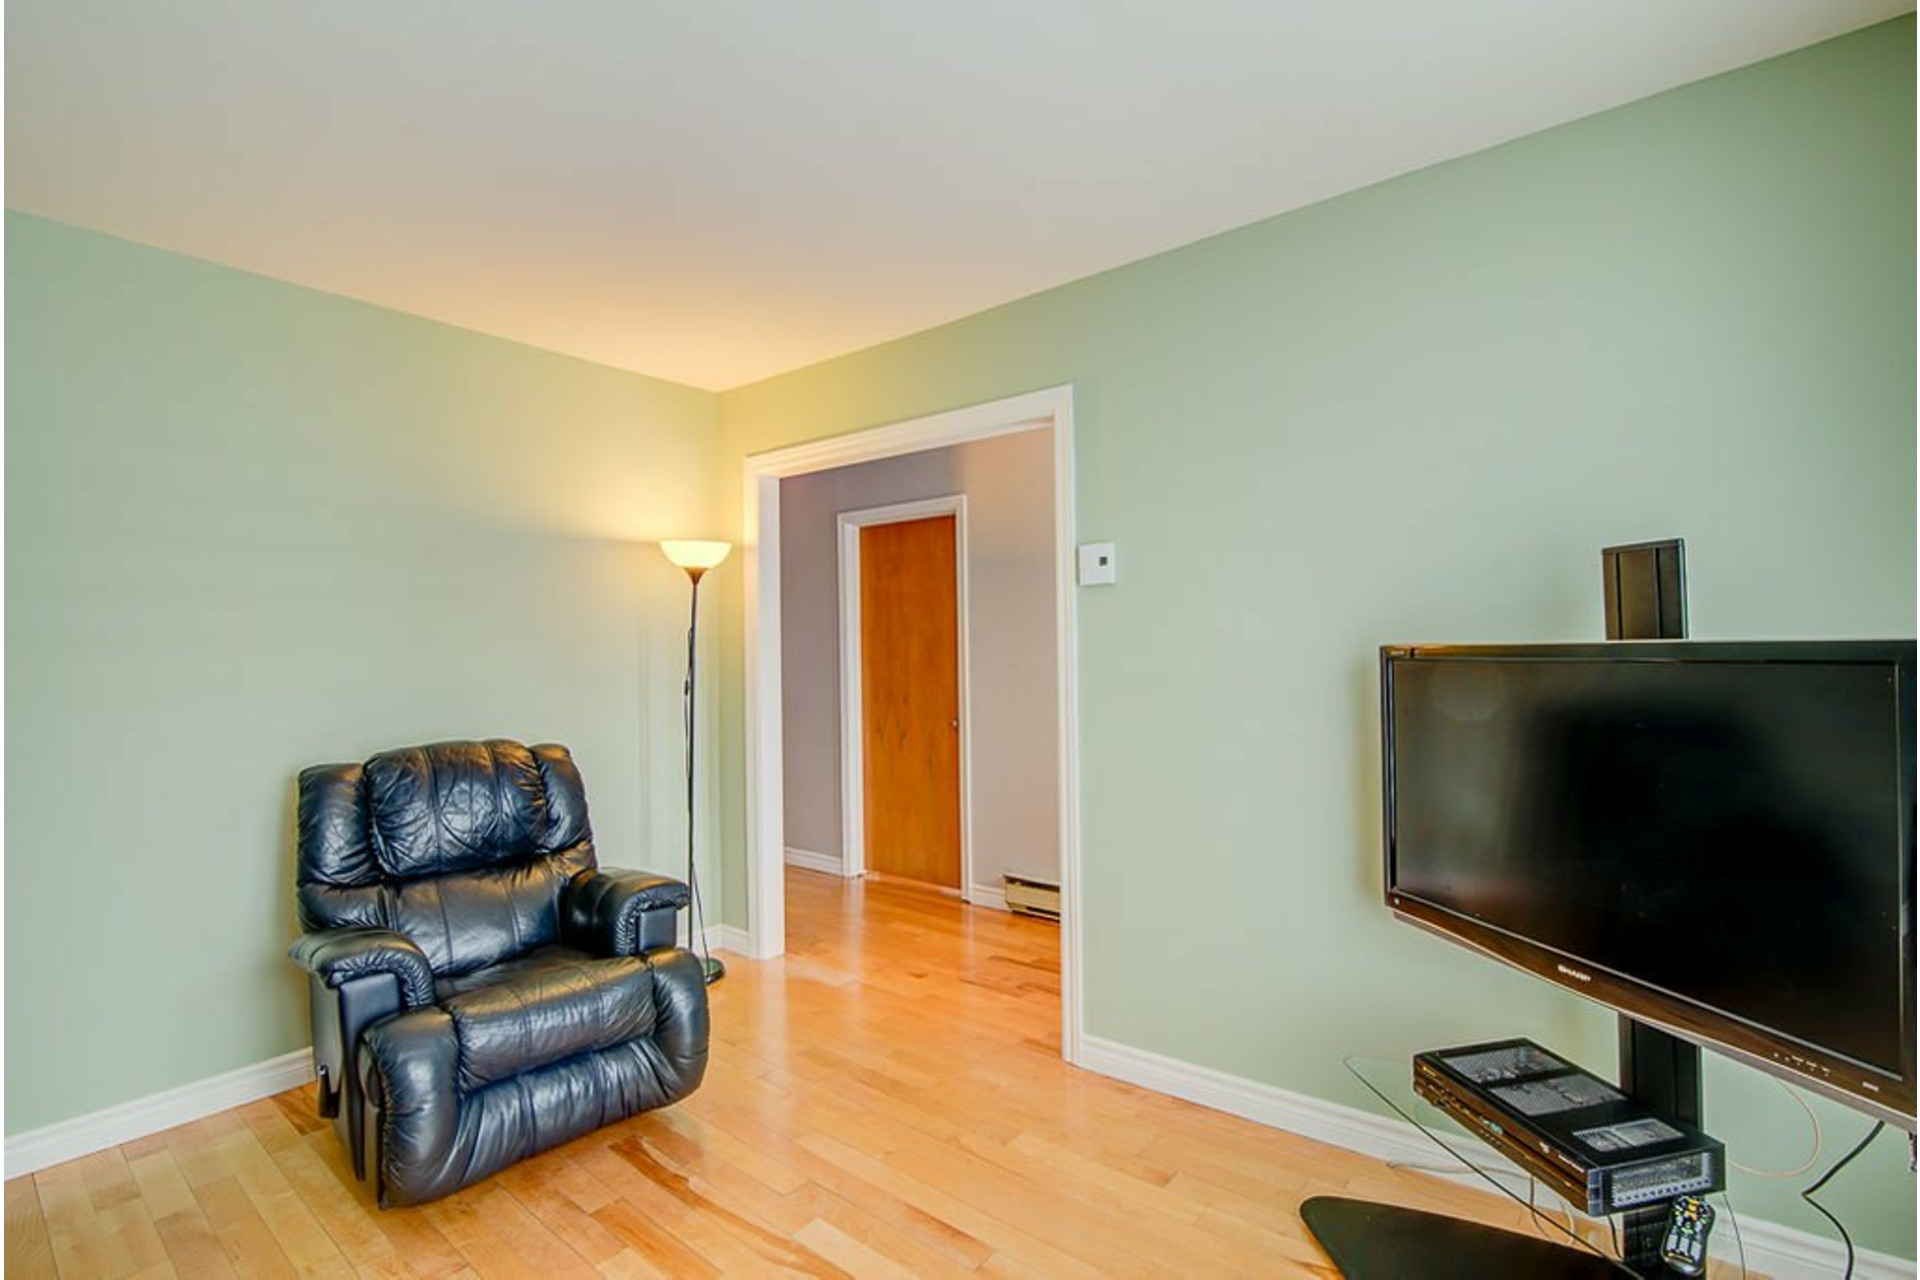 image 5 - House For sale Sainte-Anne-des-Plaines - 10 rooms